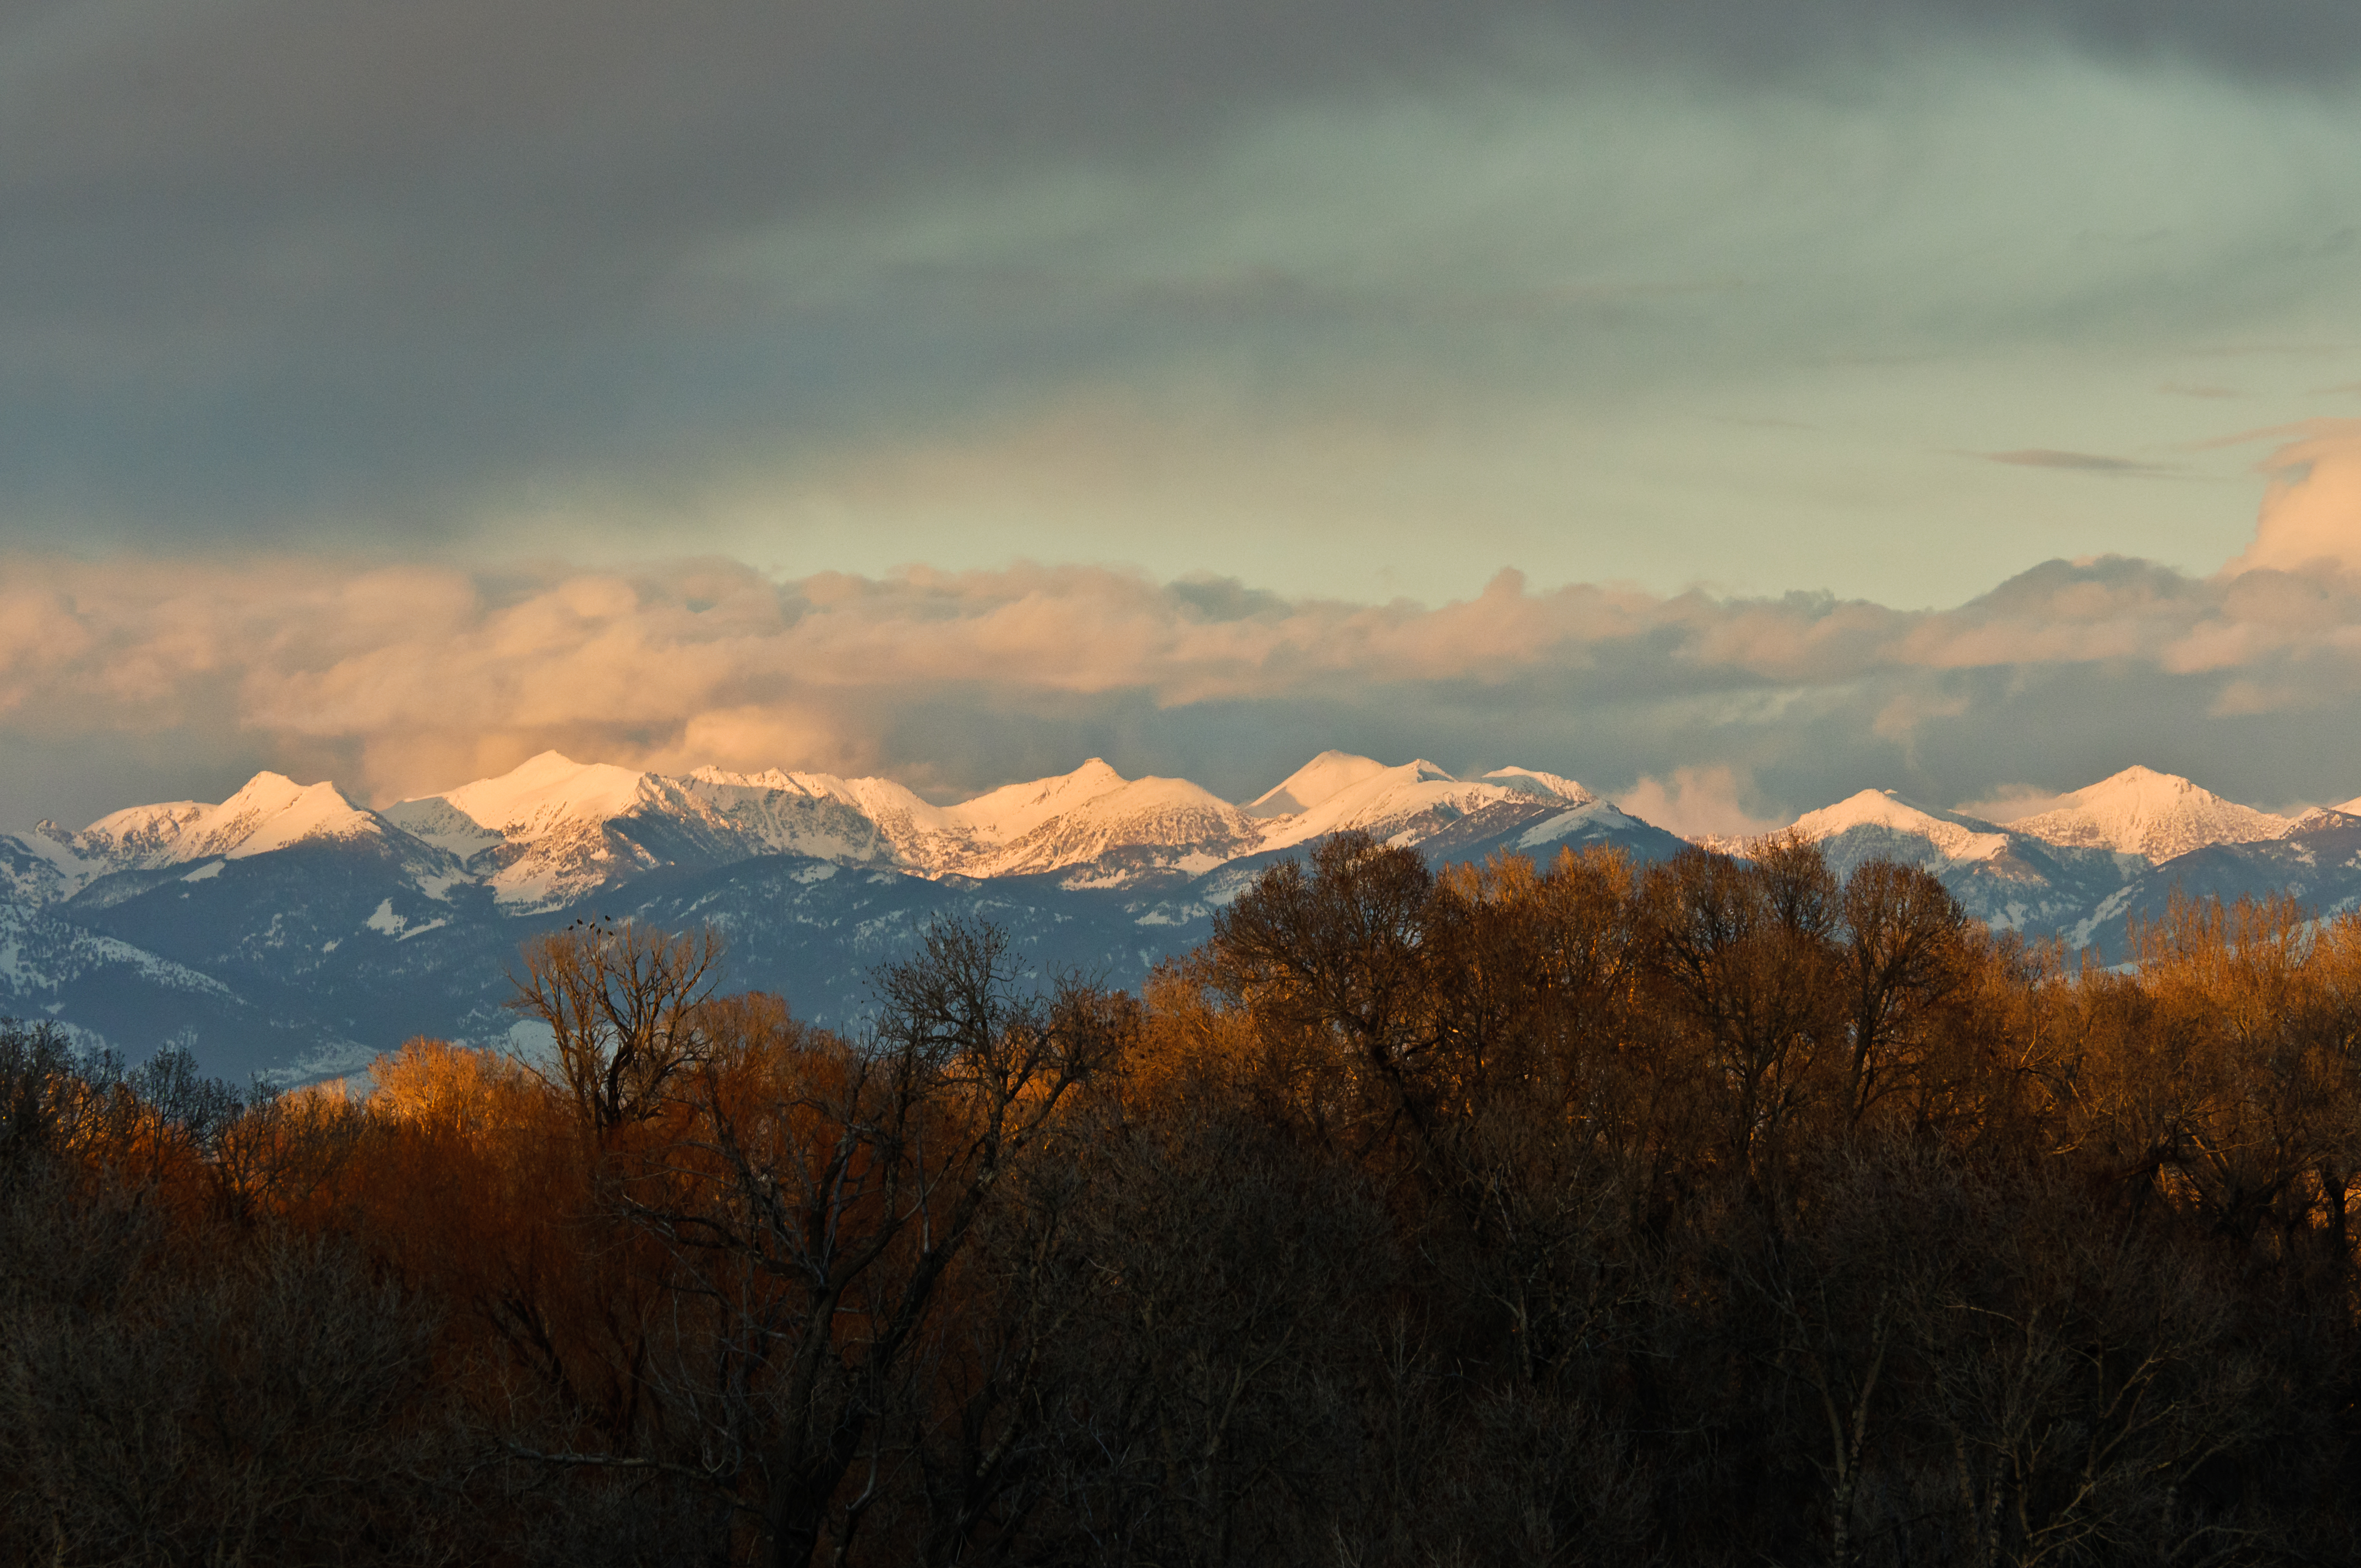 Sunset over the Tobacco Root Mountains during a spring storm